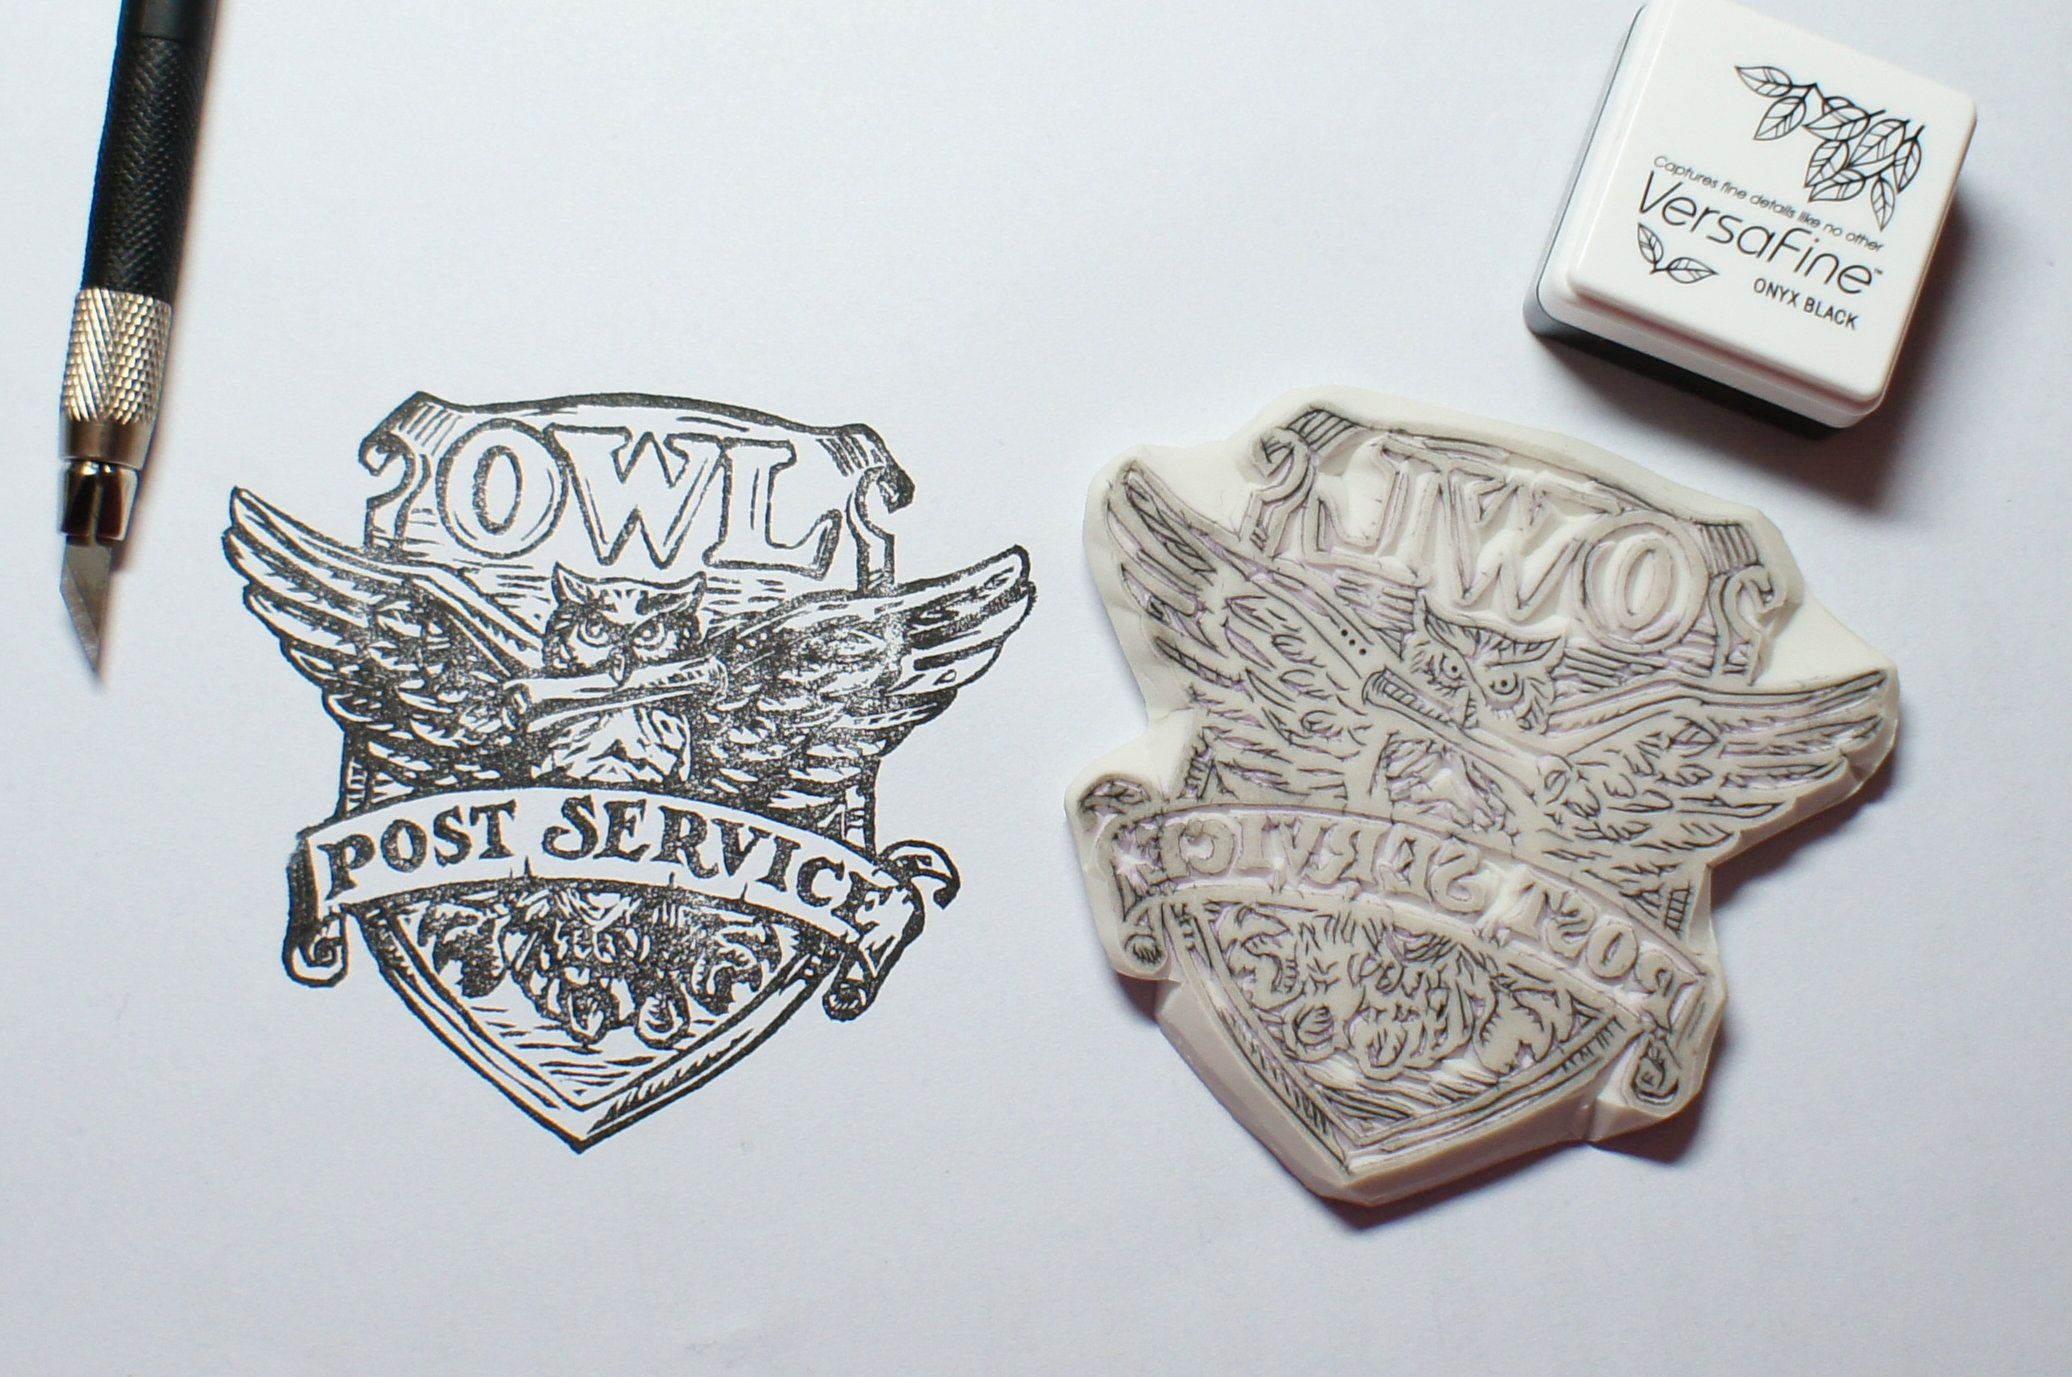 Owl Post Office From Harry Potter Rubber Stamp